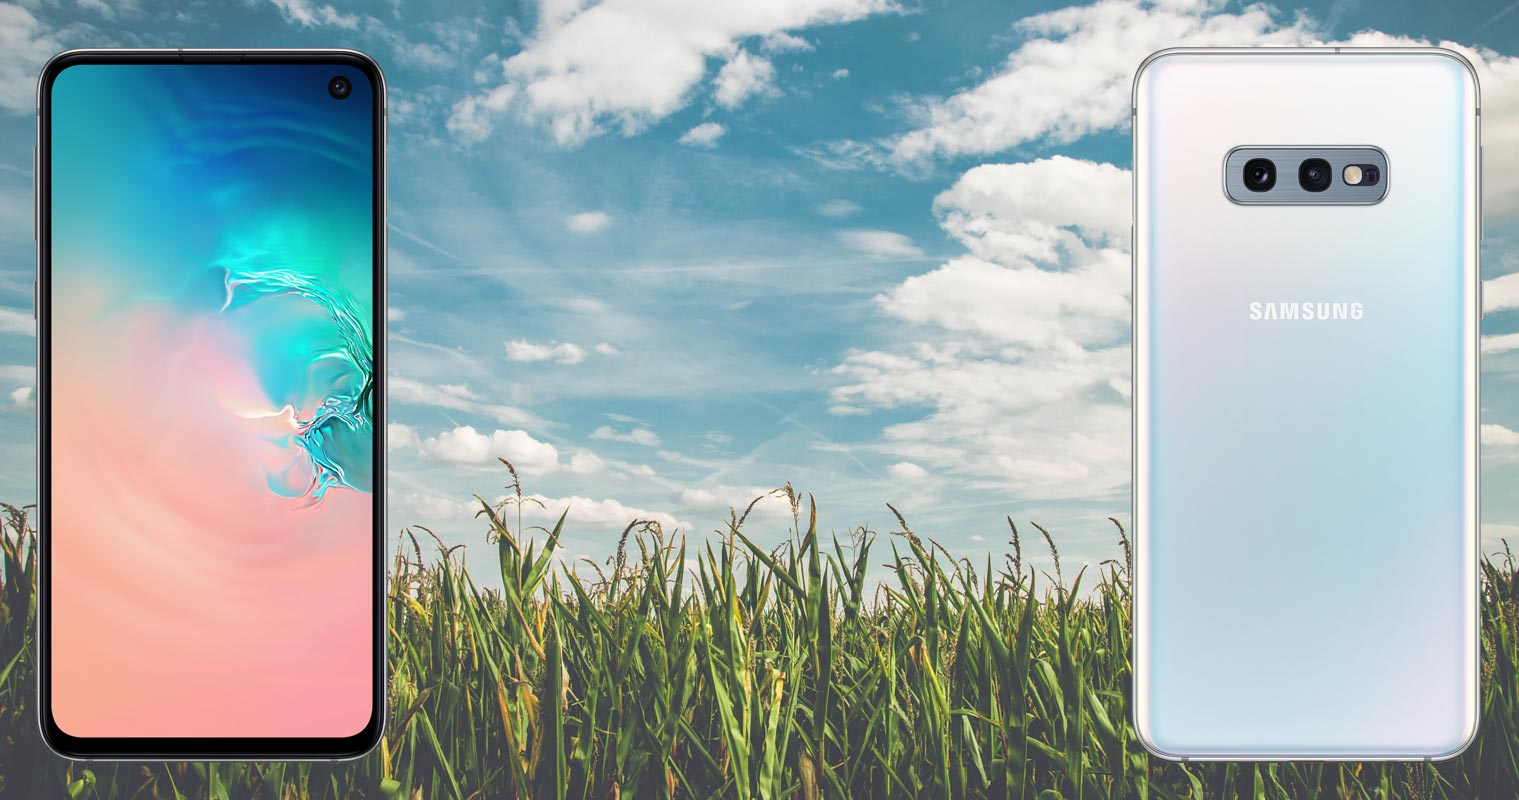 Samsung Galaxy S10e with Corn Farm Background